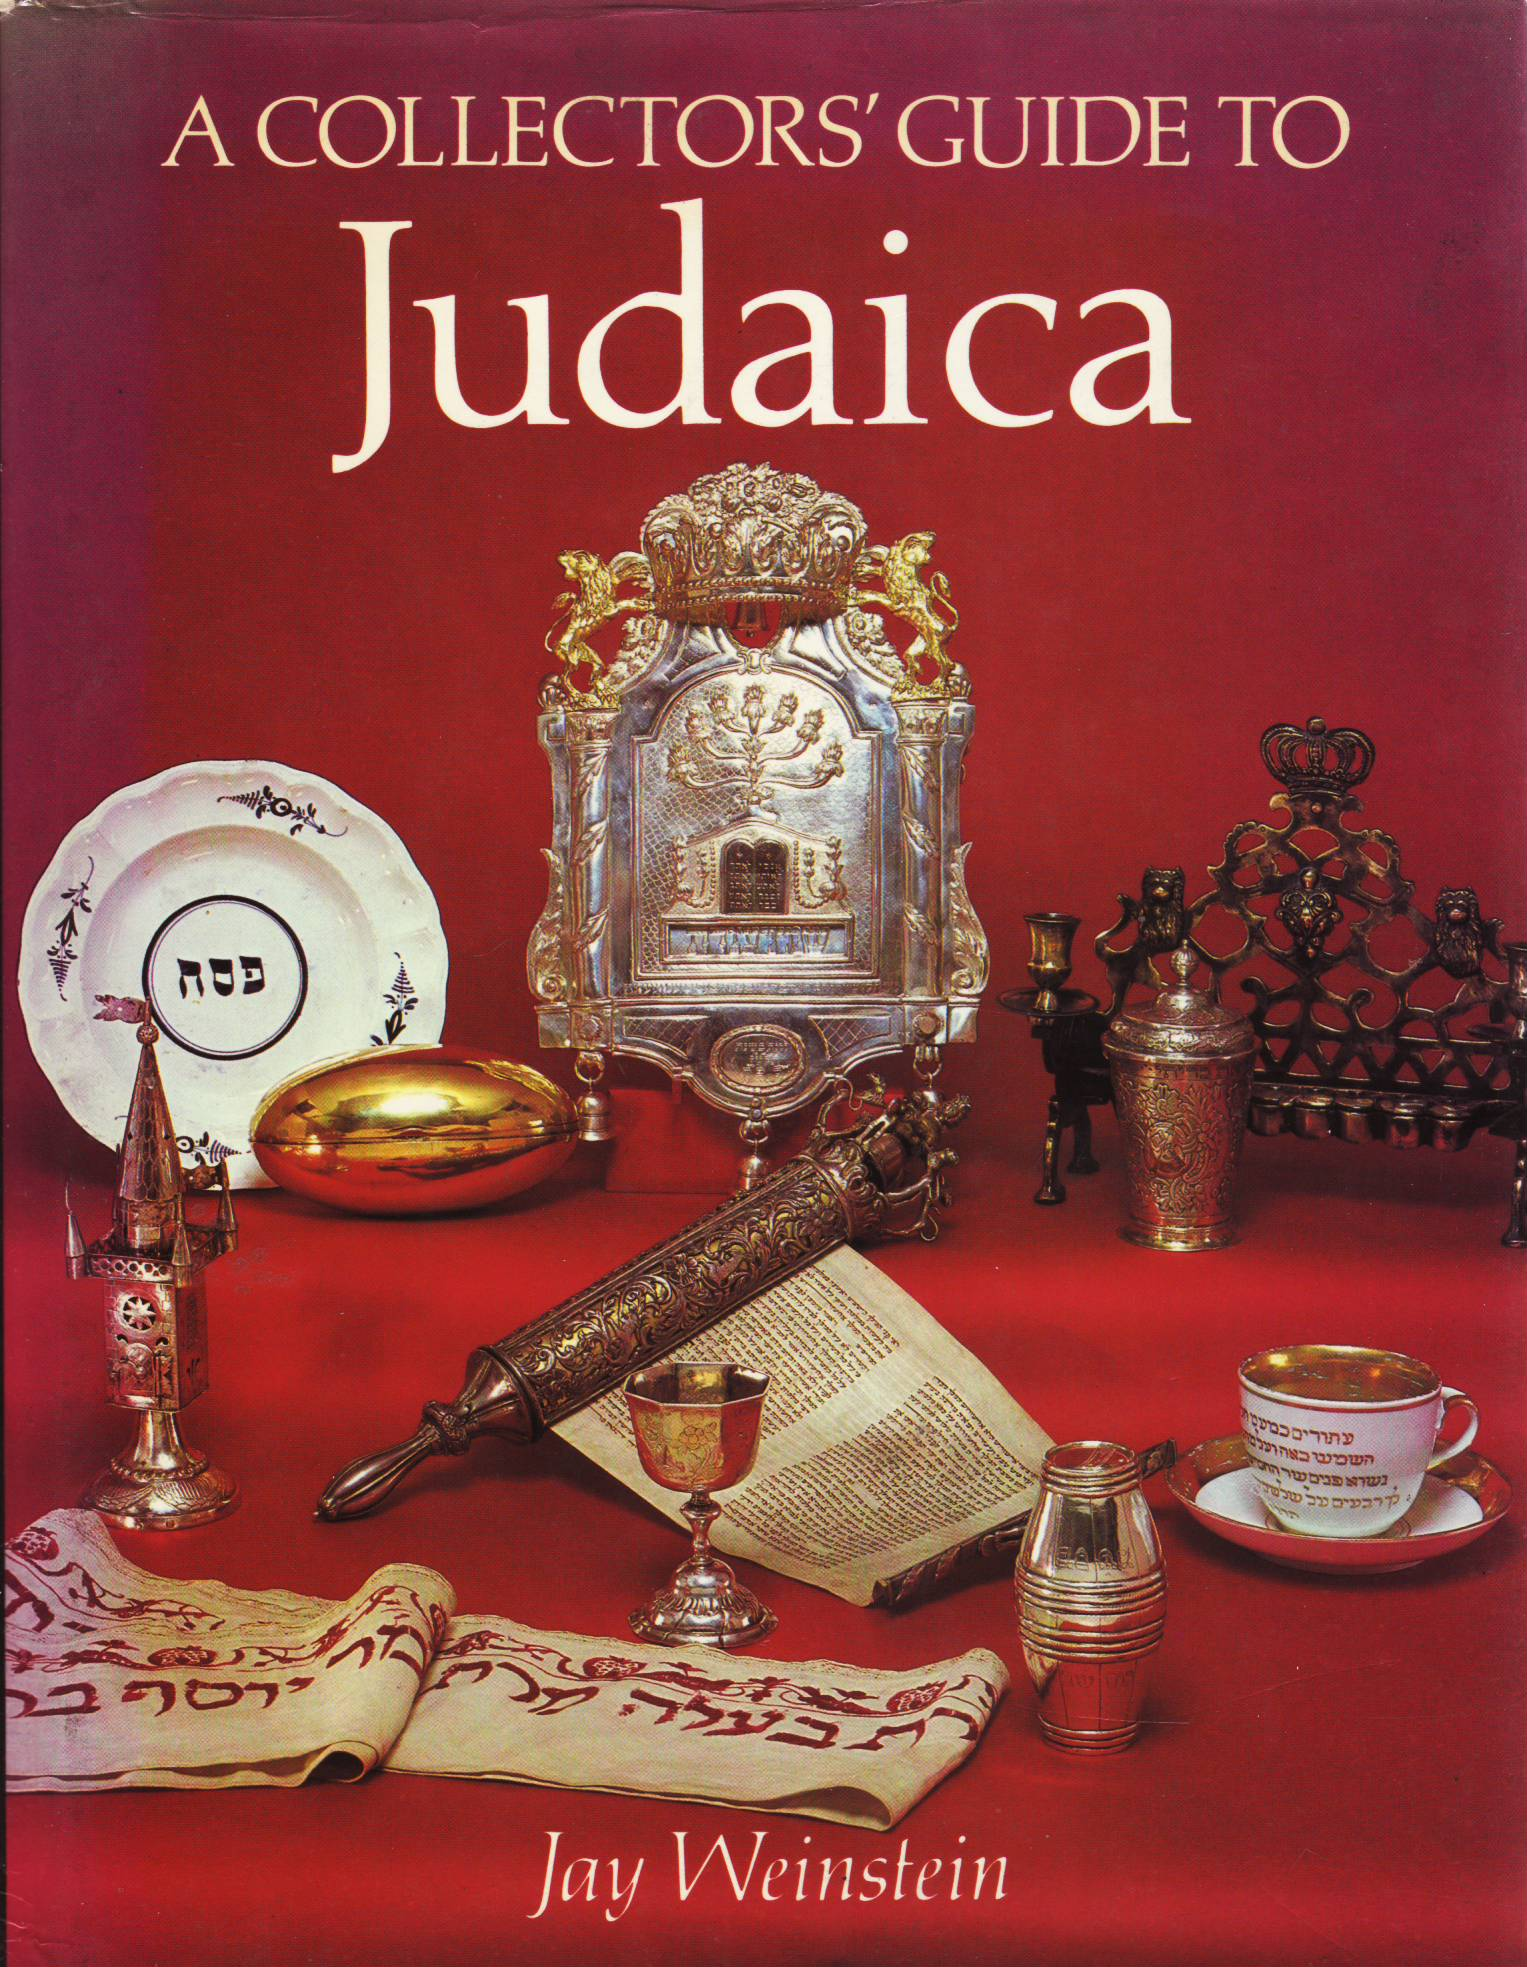 Jay Weinstein - A Collector's Guide to Judaica